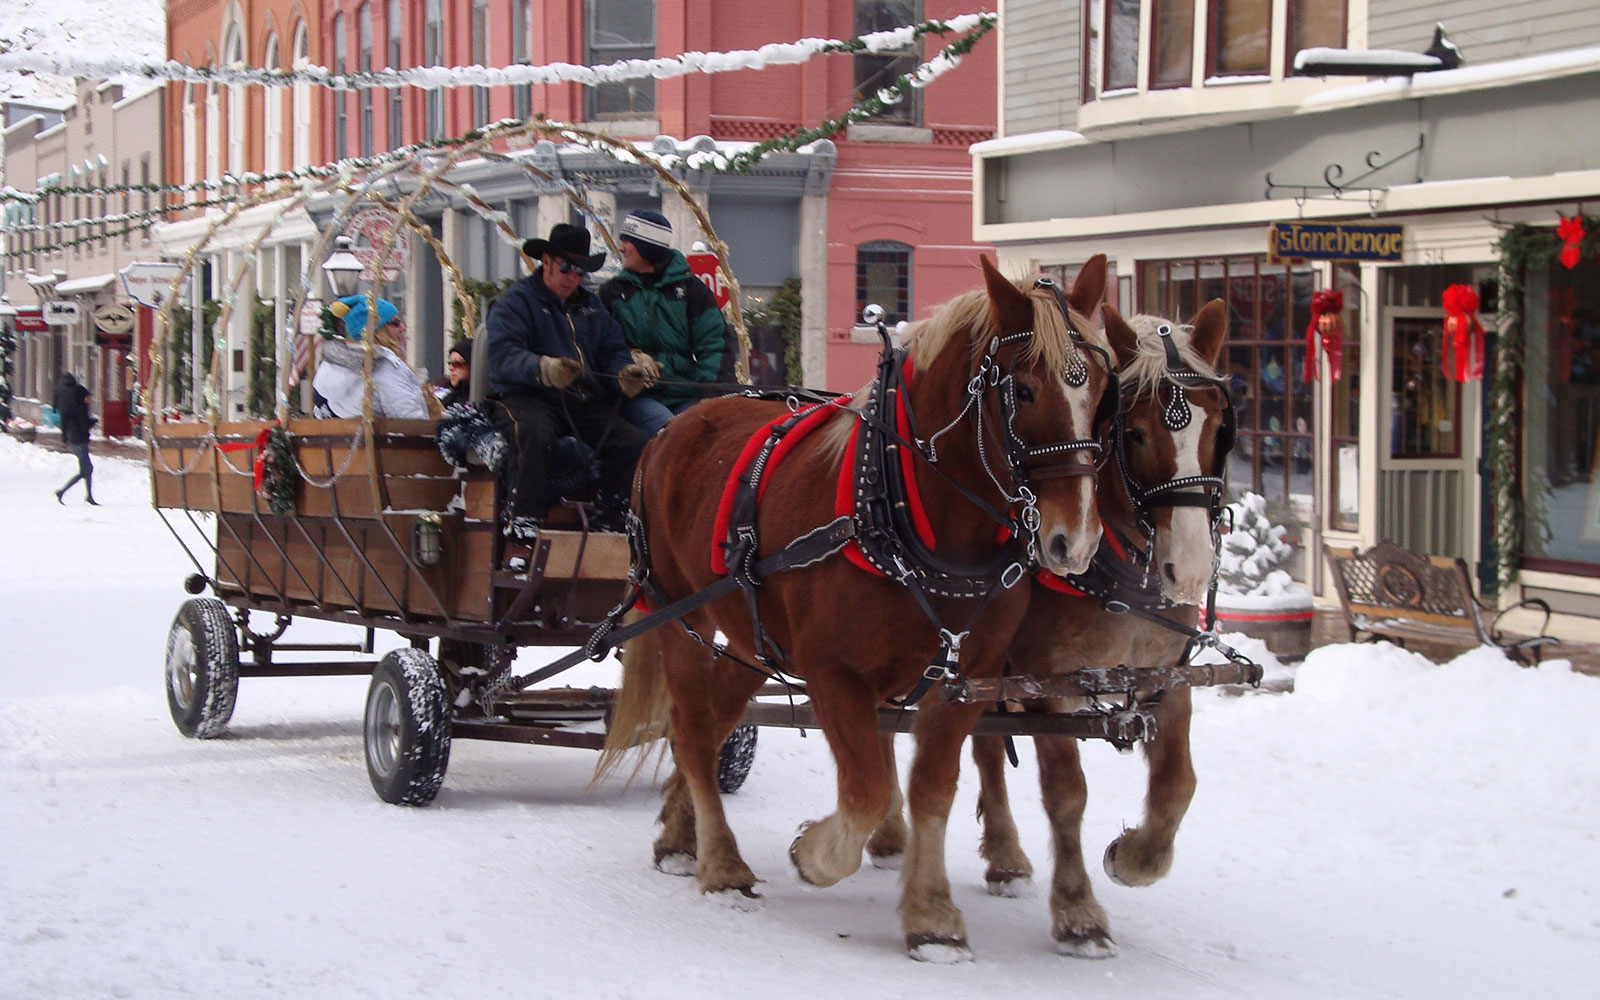 Georgetown Christmas Market, CO